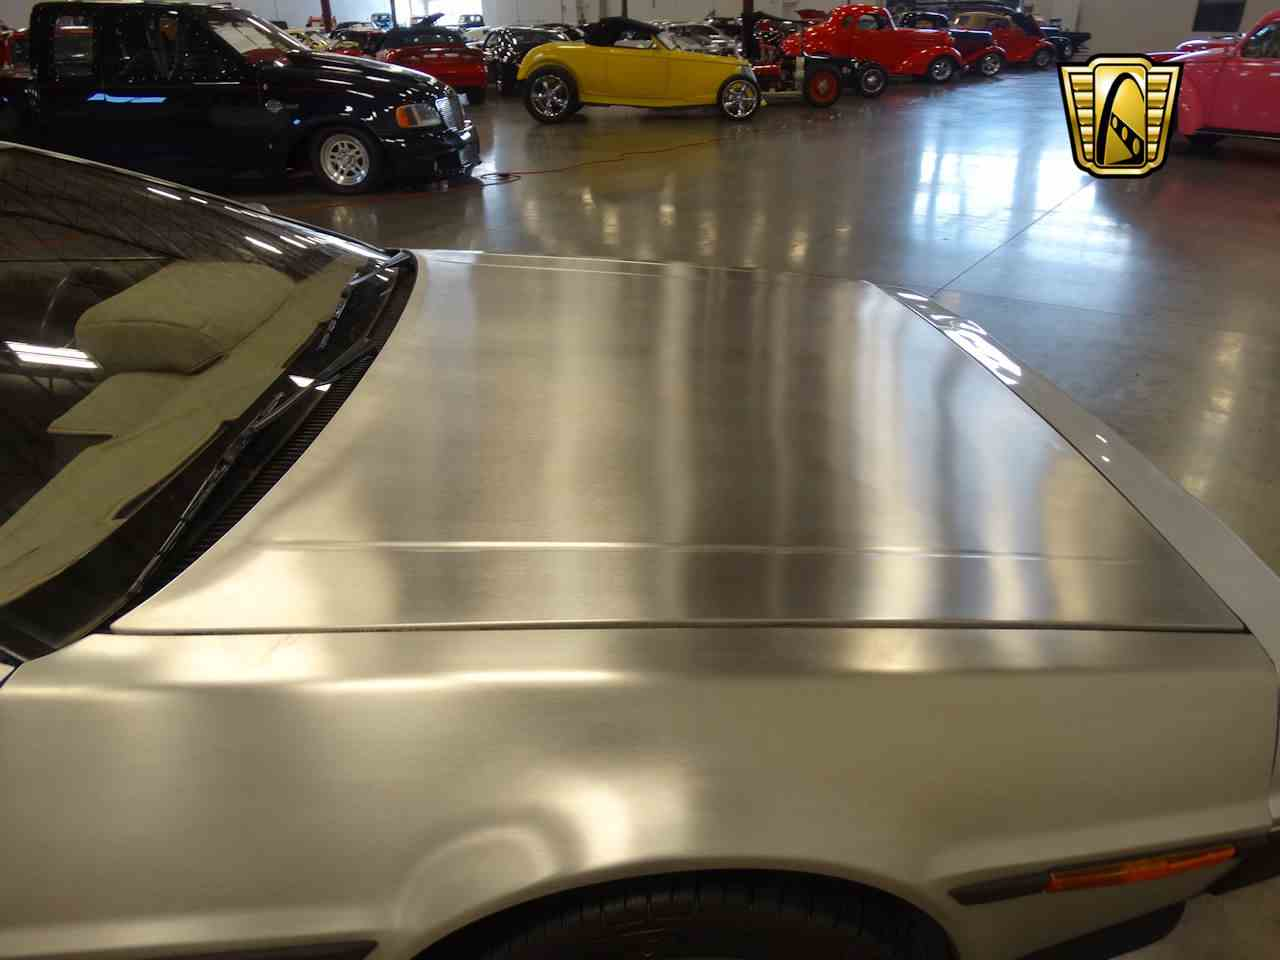 Large Picture of '81 DMC-12 located in Tennessee - $29,995.00 Offered by Gateway Classic Cars - Nashville - M2L4